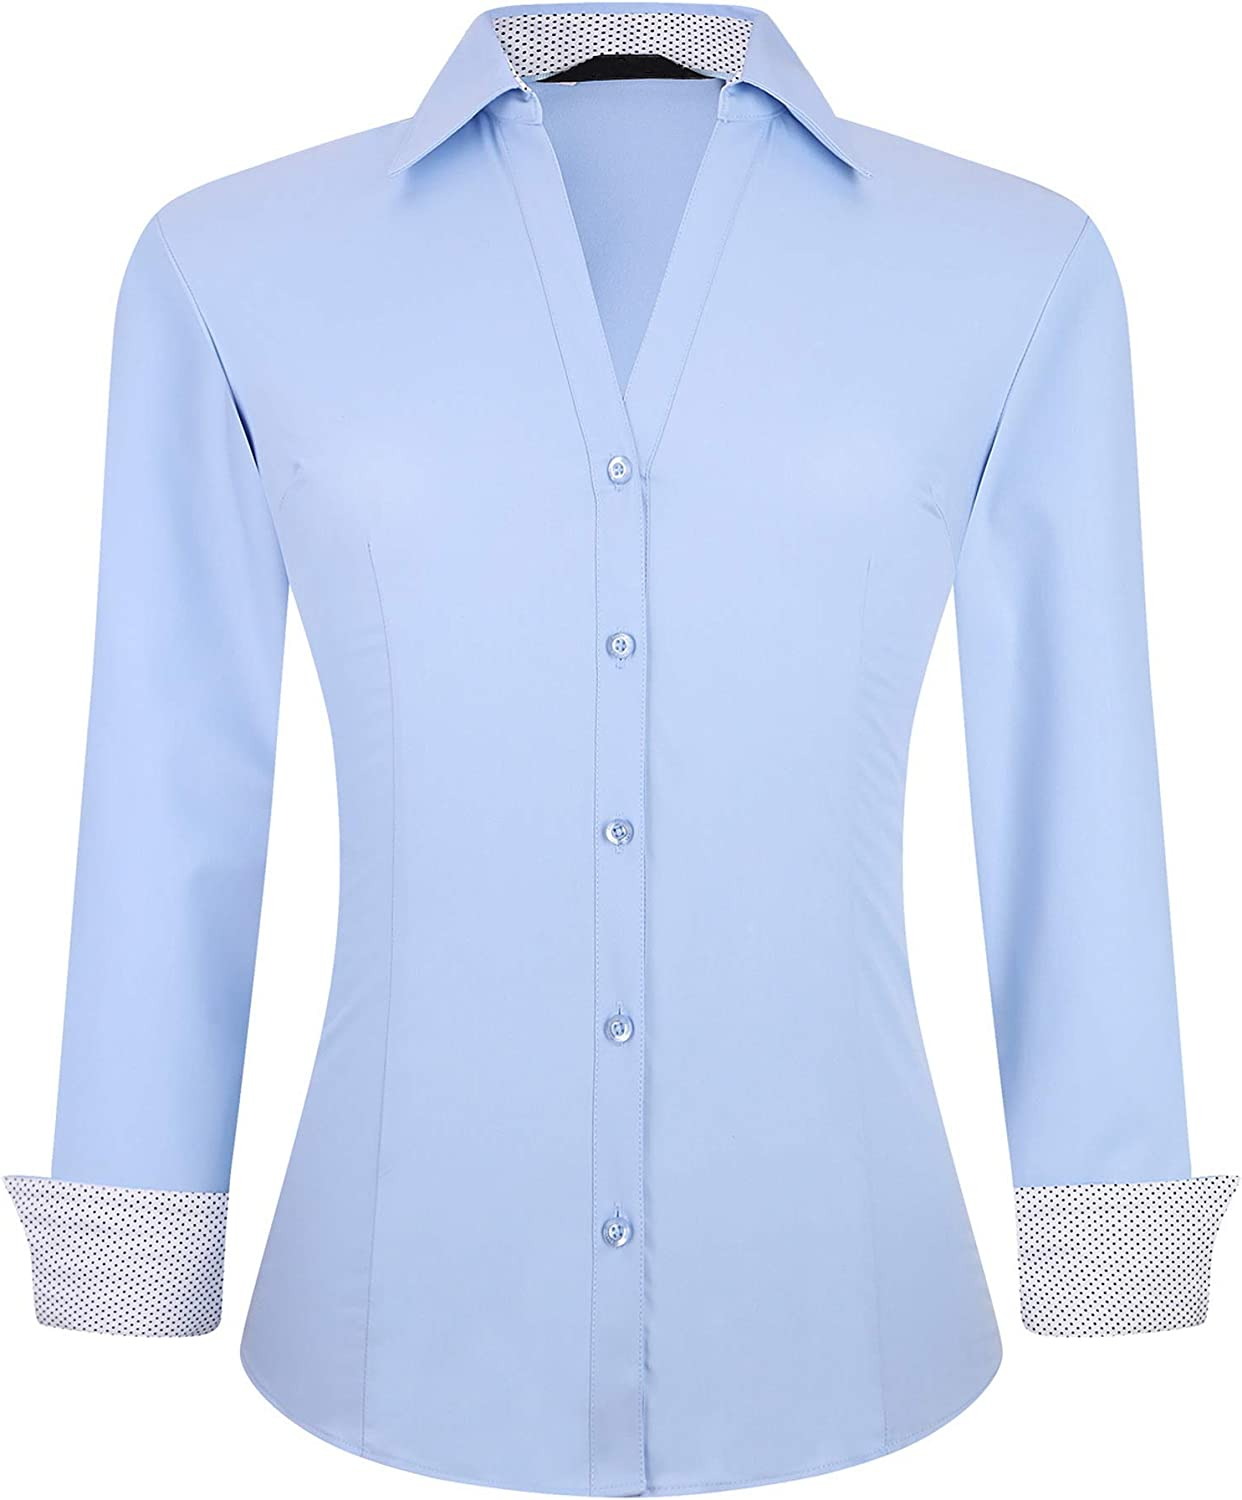 Alex Vando Womens Button Down Shirts Low price Sleeve Stret Long Direct sale of manufacturer Easy Care